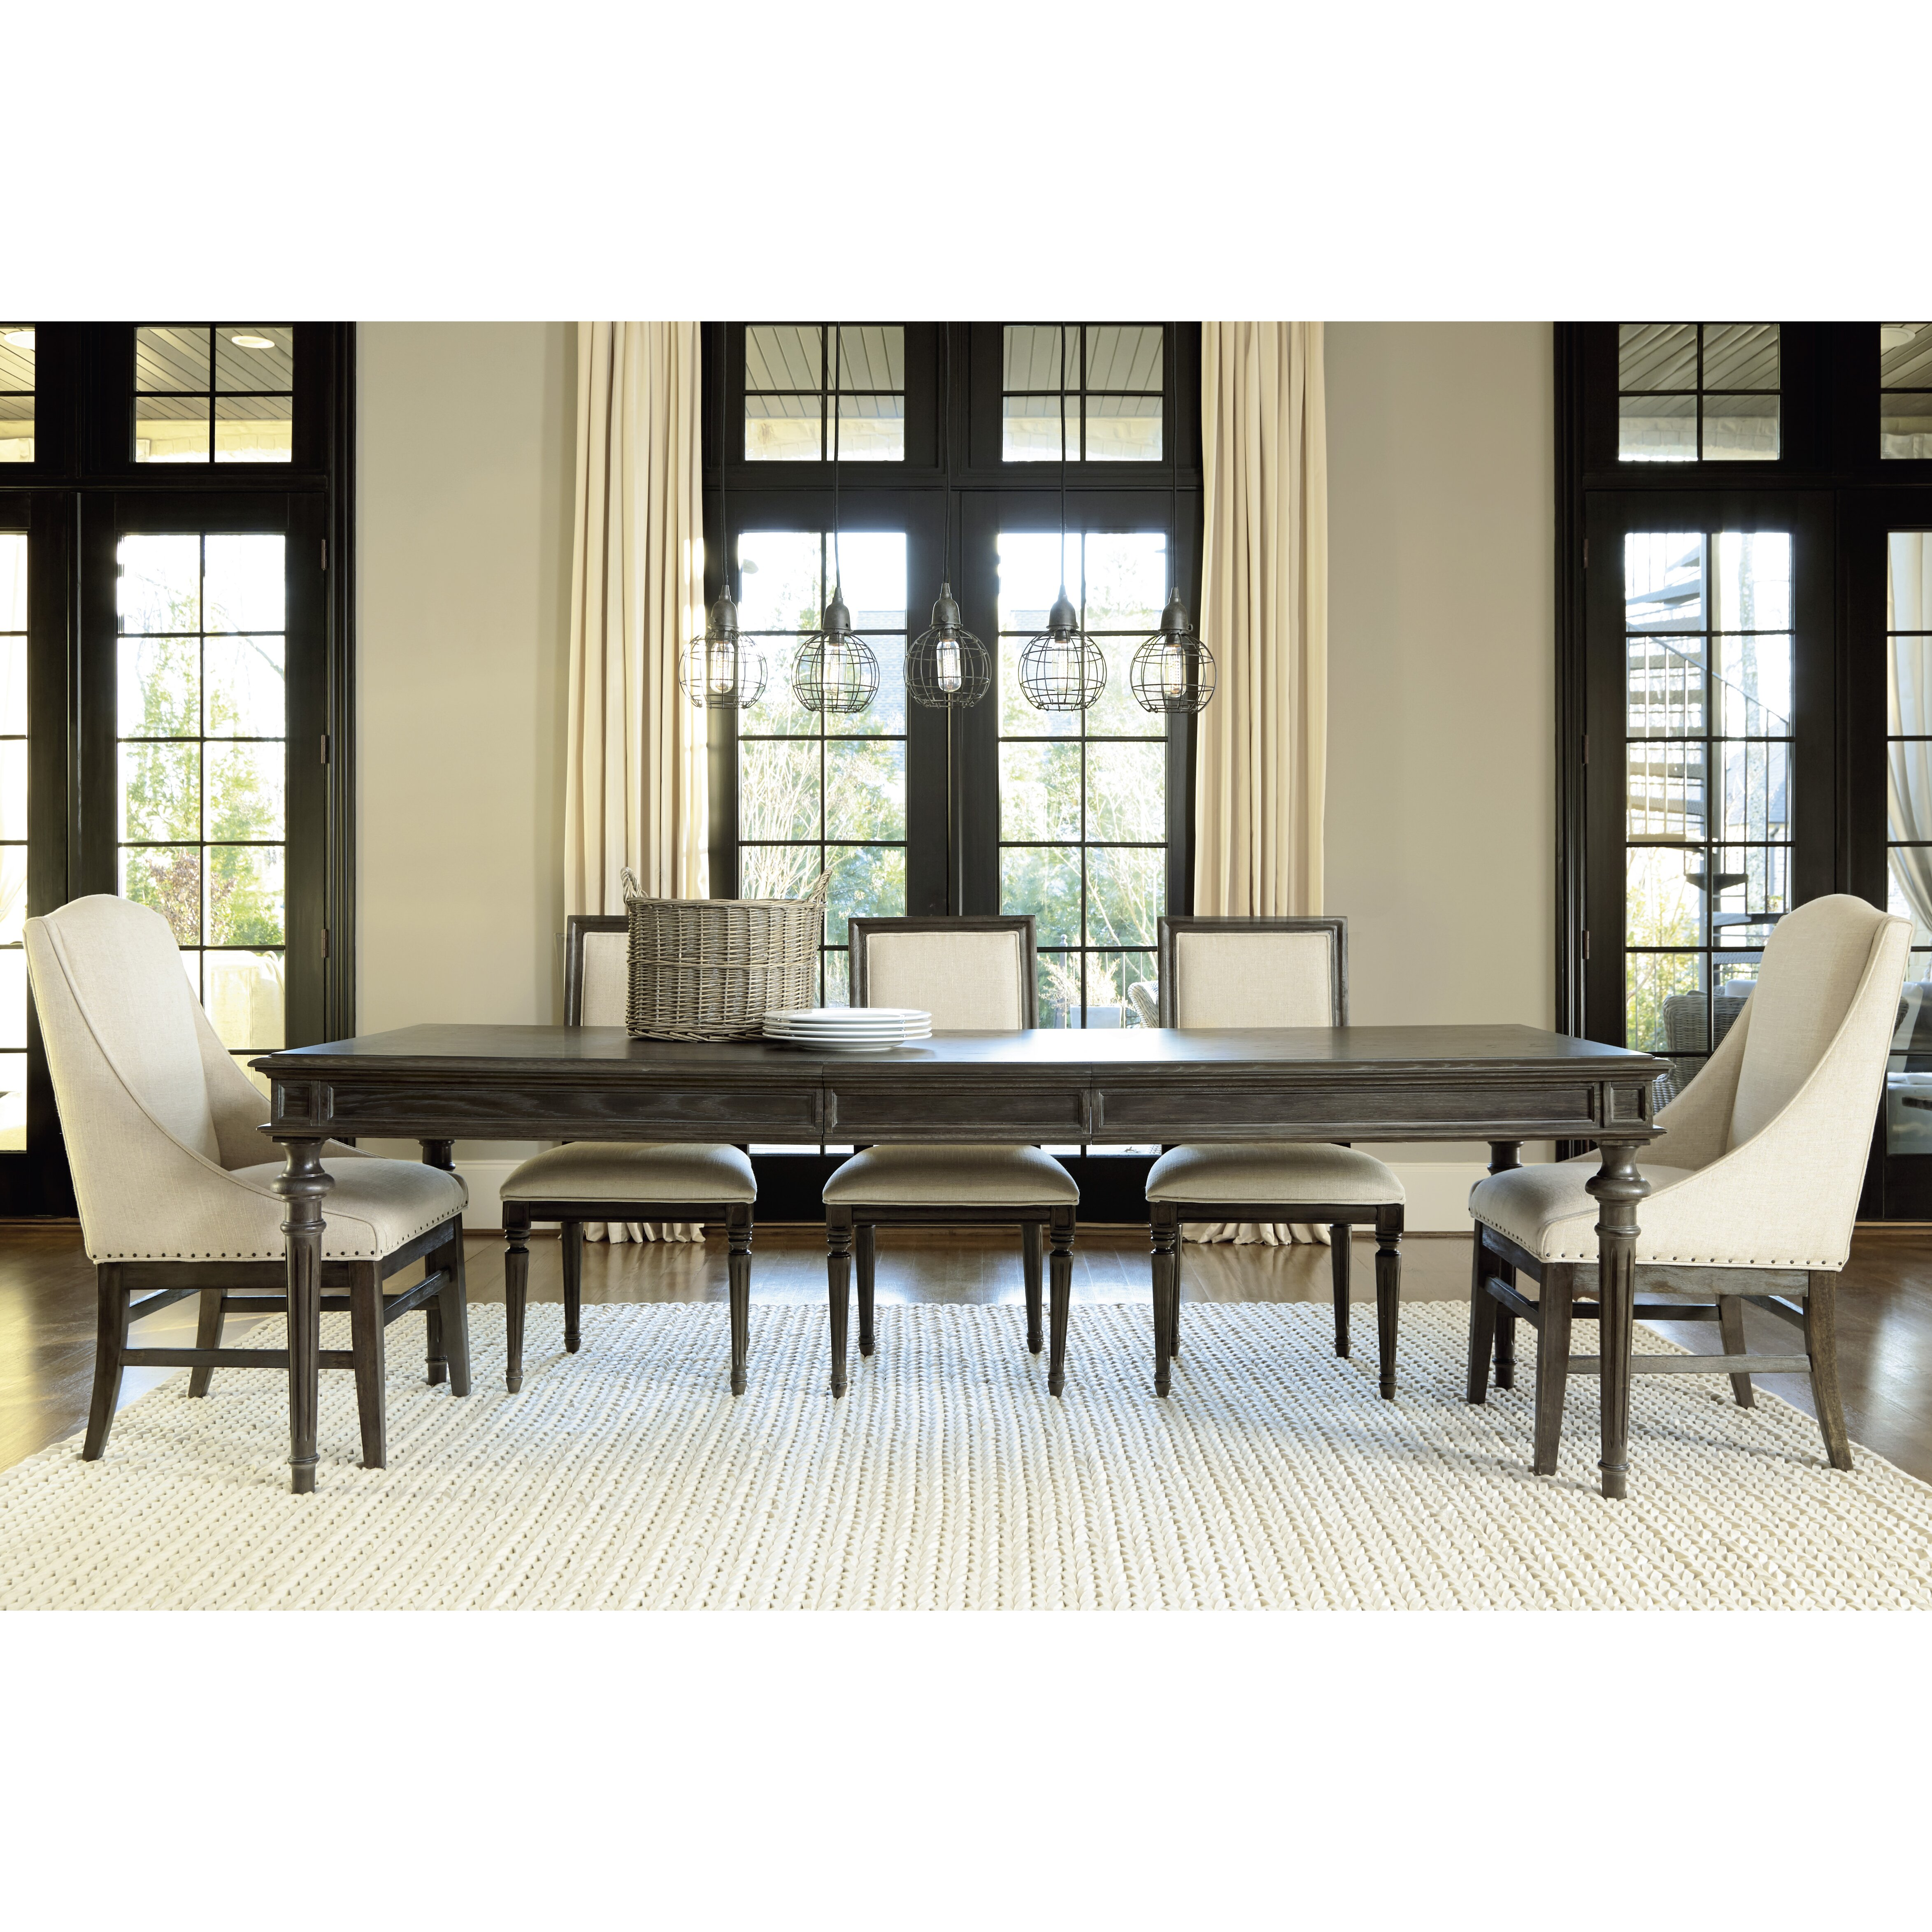 Universal Furniture Berkeley 3 Tribecca Dining Table